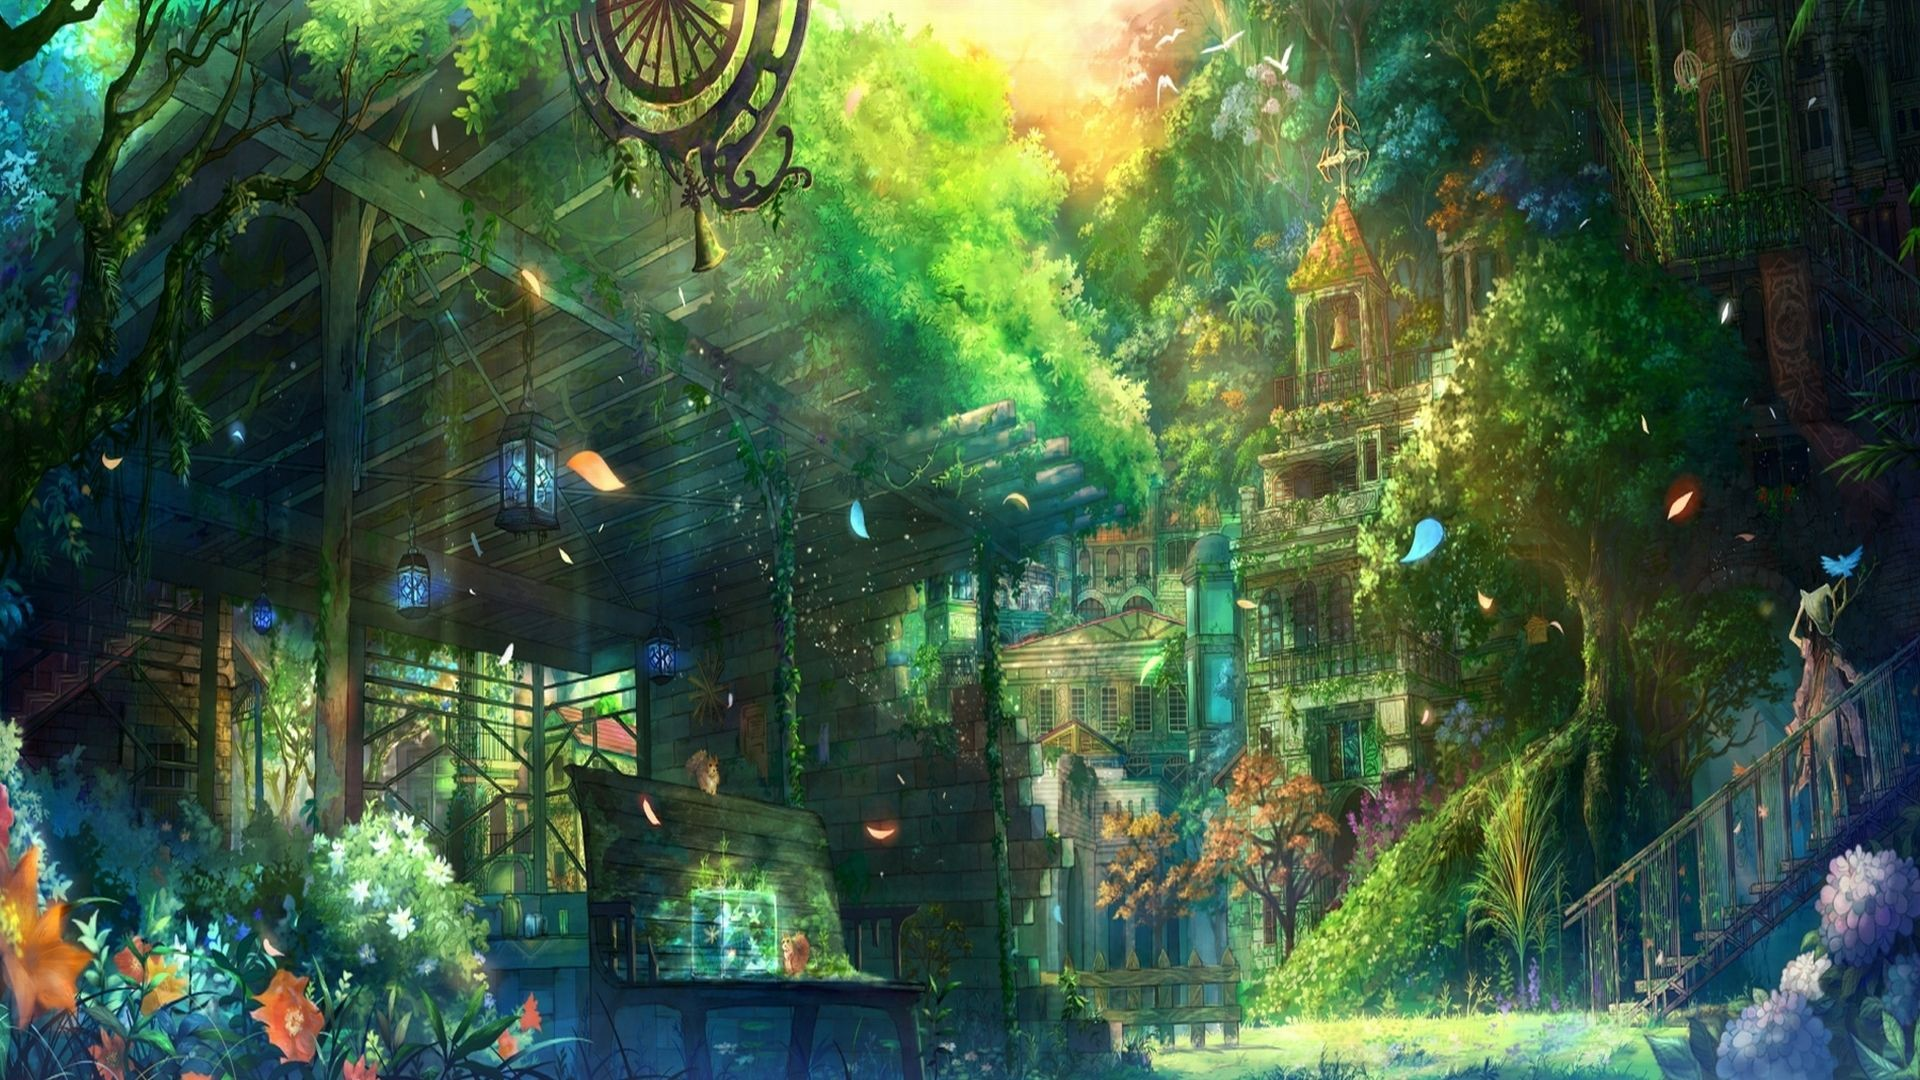 Anime Scenery HD Wallpapers Page 1920x1080